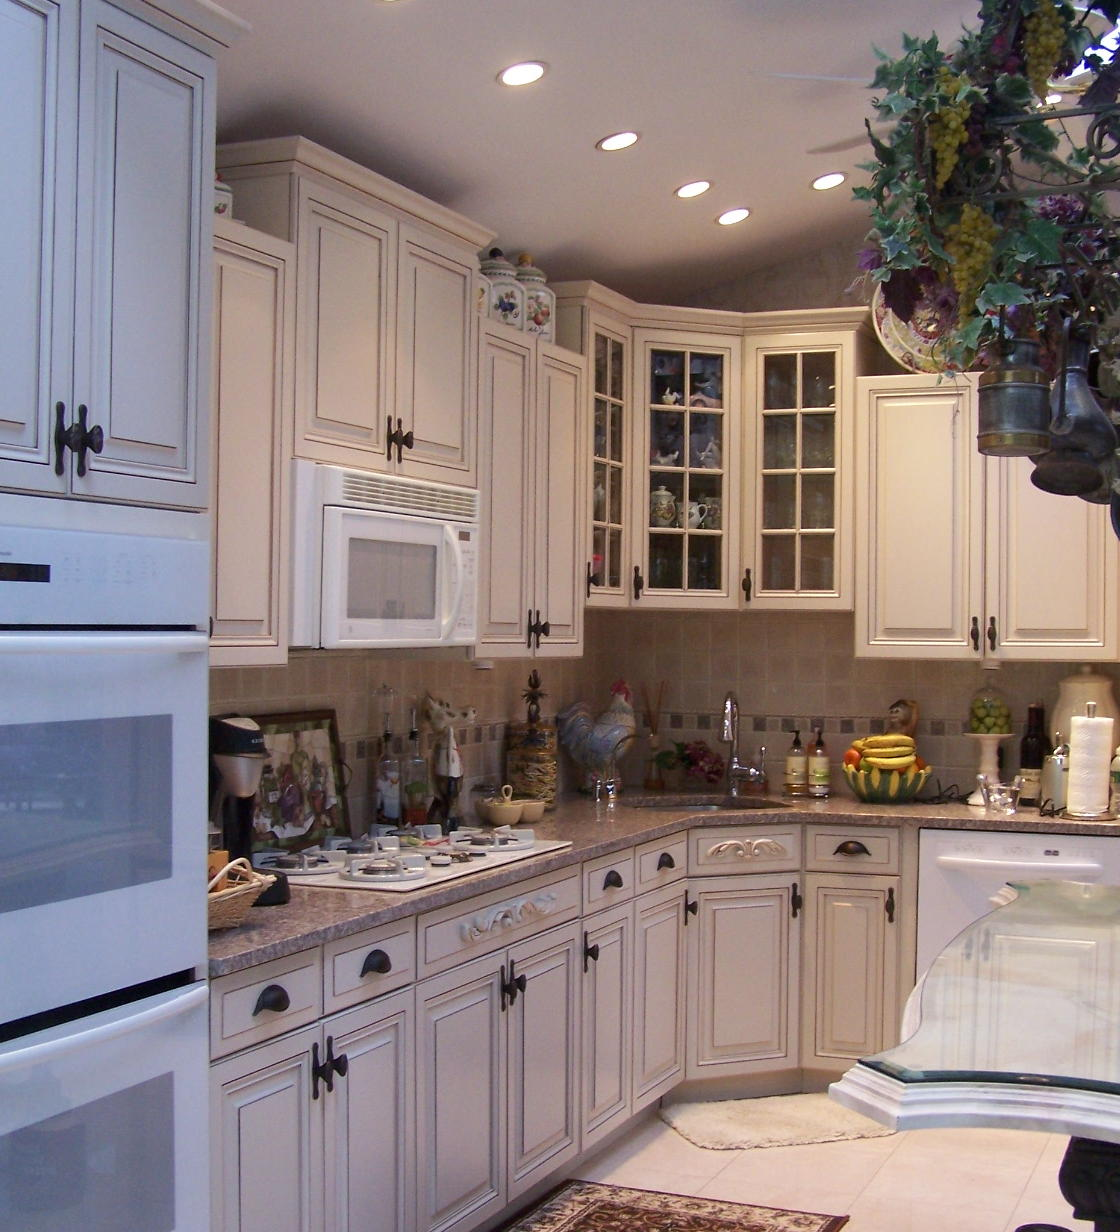 Benjamin Moore White Sand on kitchen cabinetry